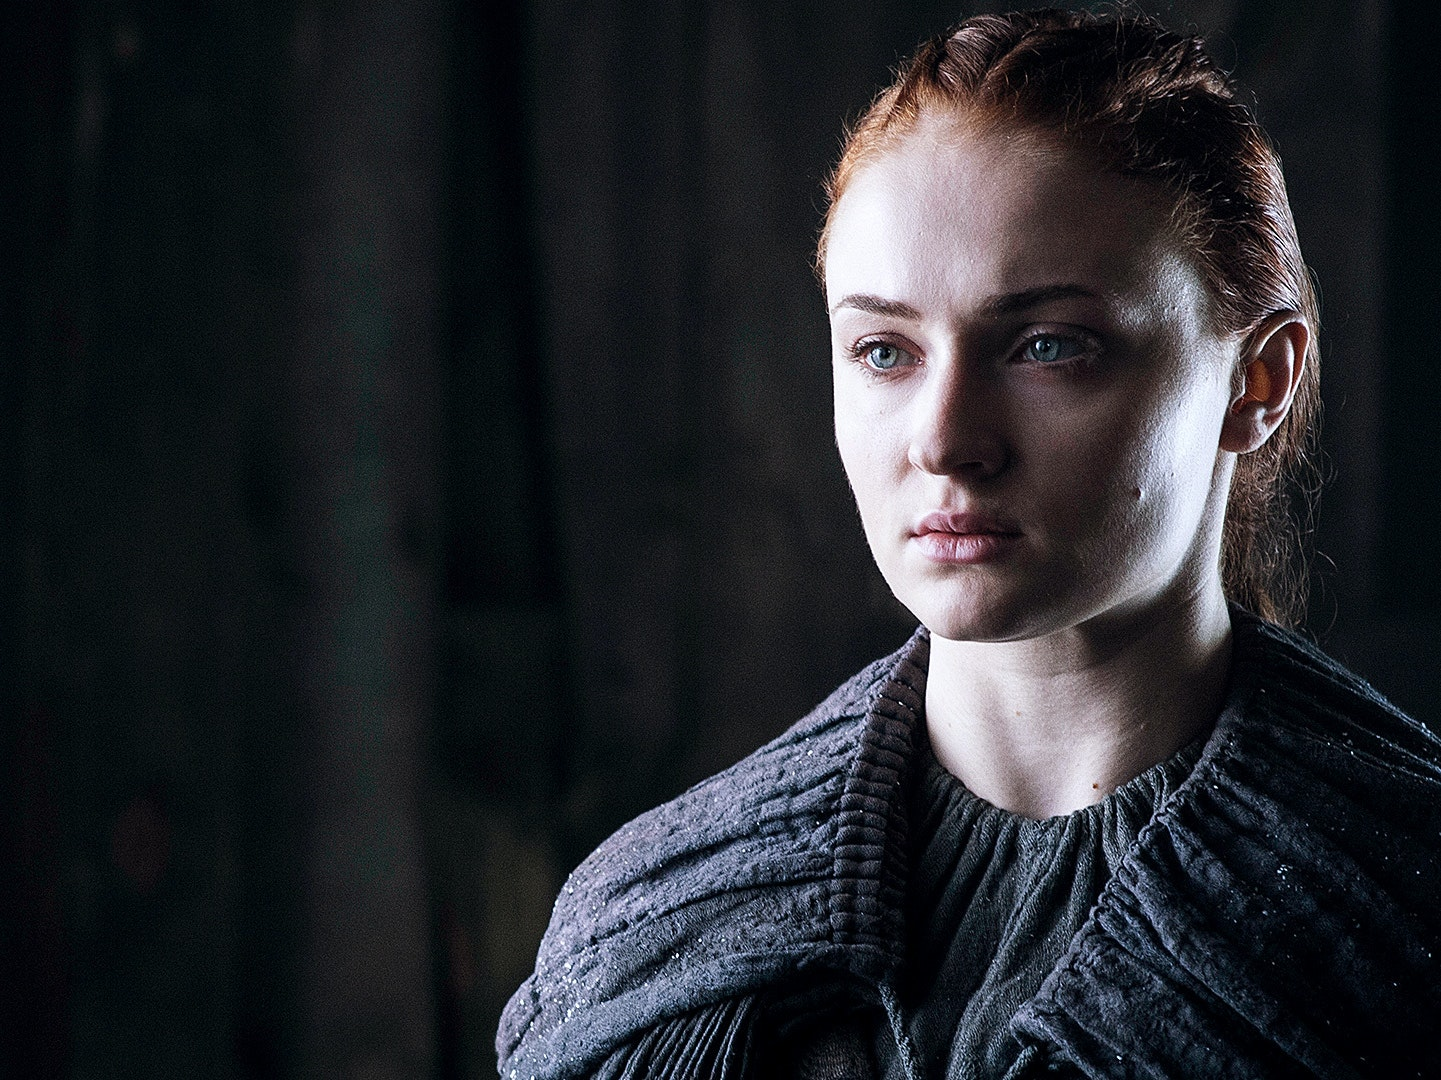 'Game of Thrones' Season 7 Is Borrowing From the Books